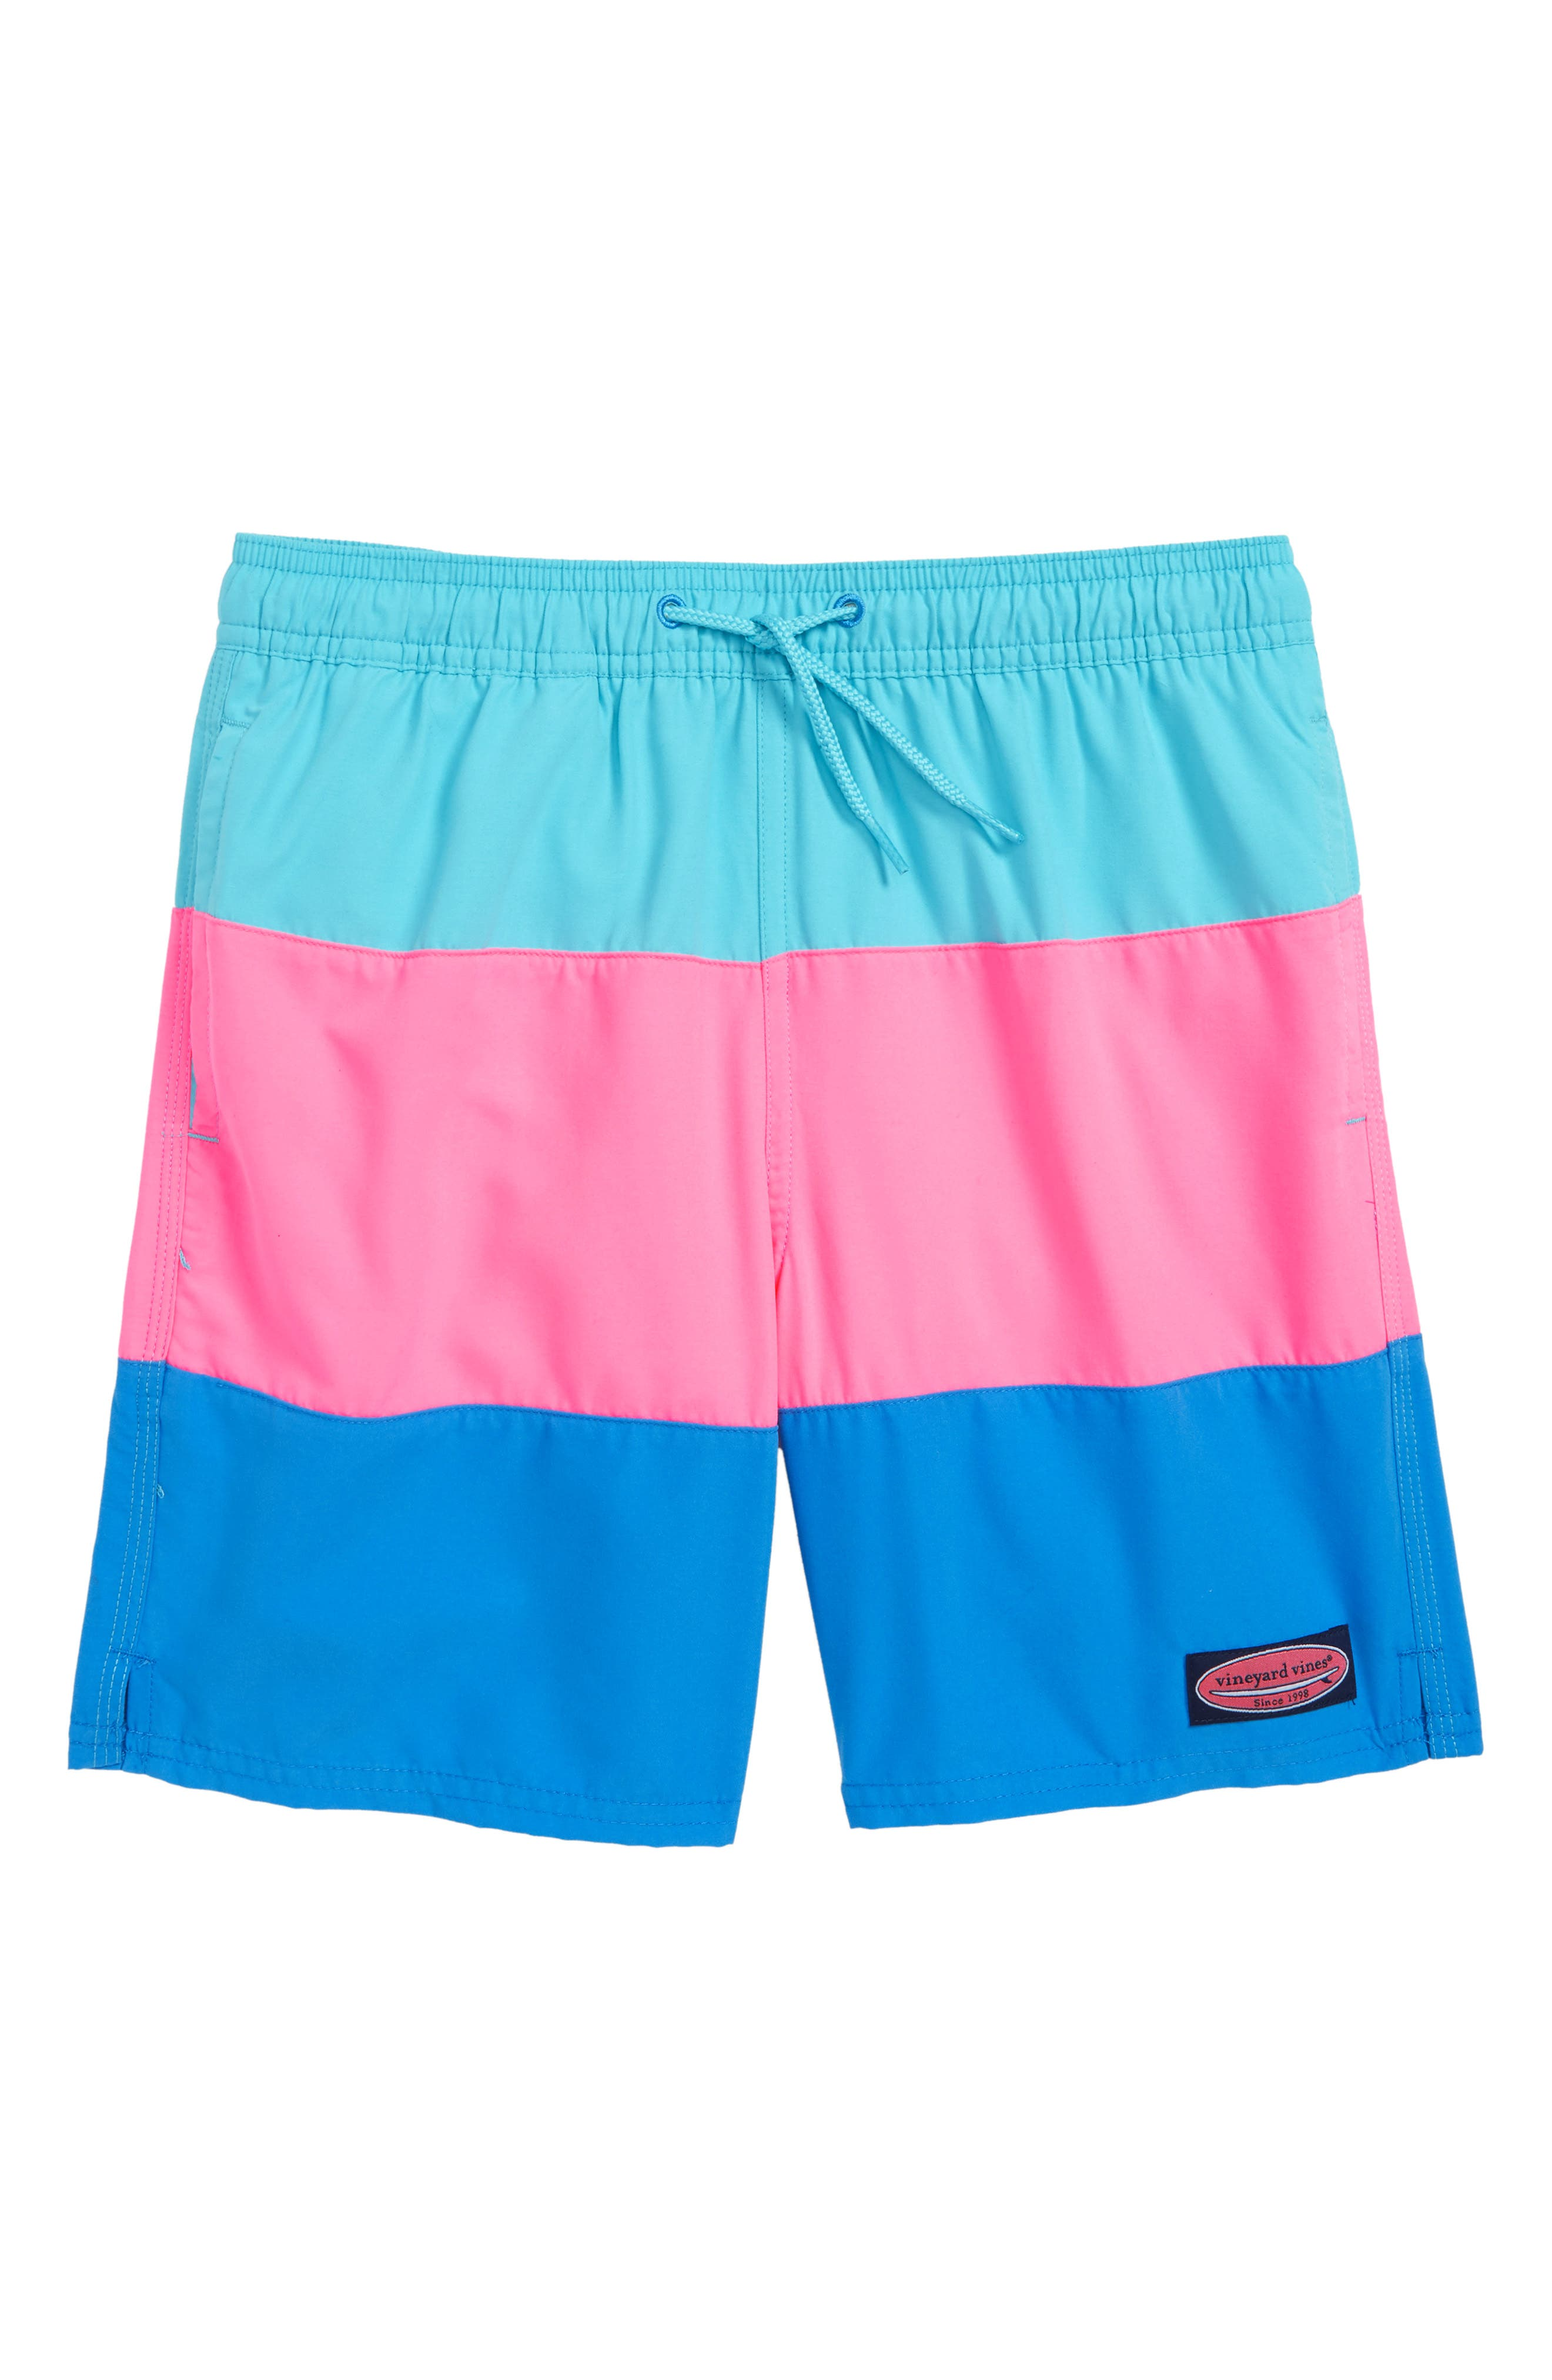 Chappy Pieced Rough Seas Swim Trunks,                         Main,                         color, 440